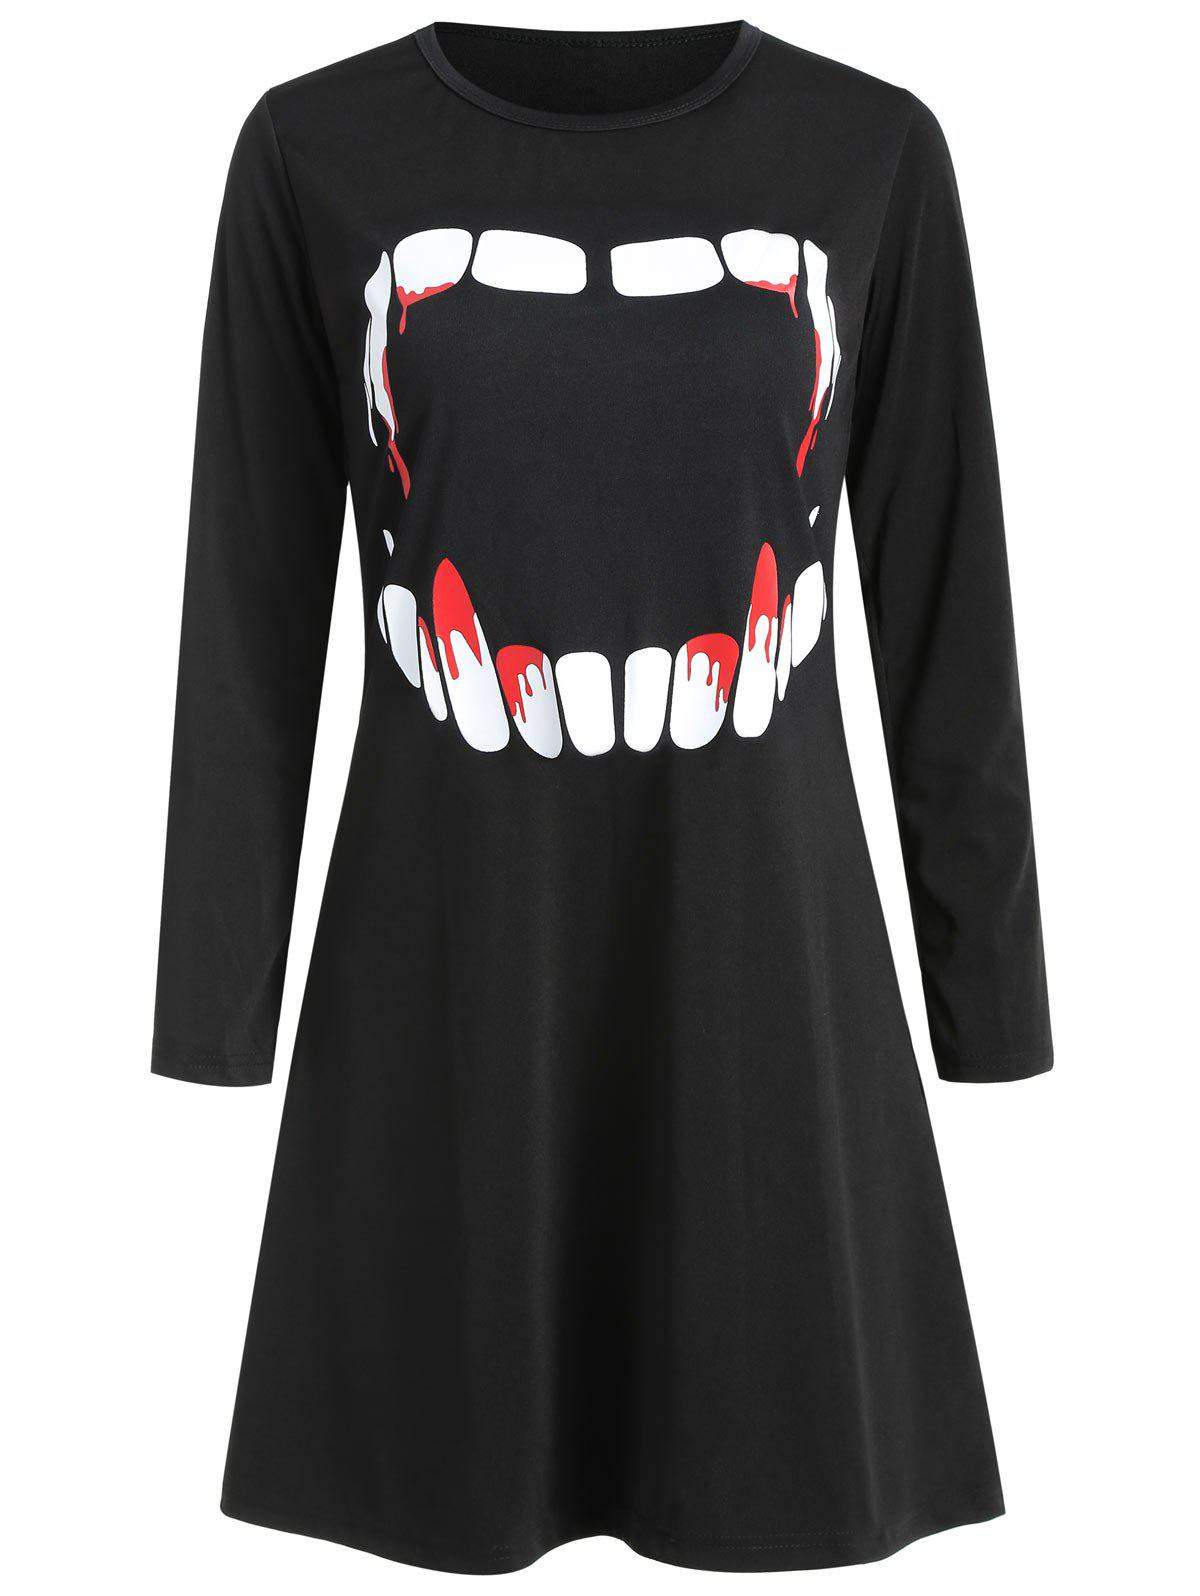 Women's Round Neck Long Sleeve Halloween Printing A-line Dress - BLACK S